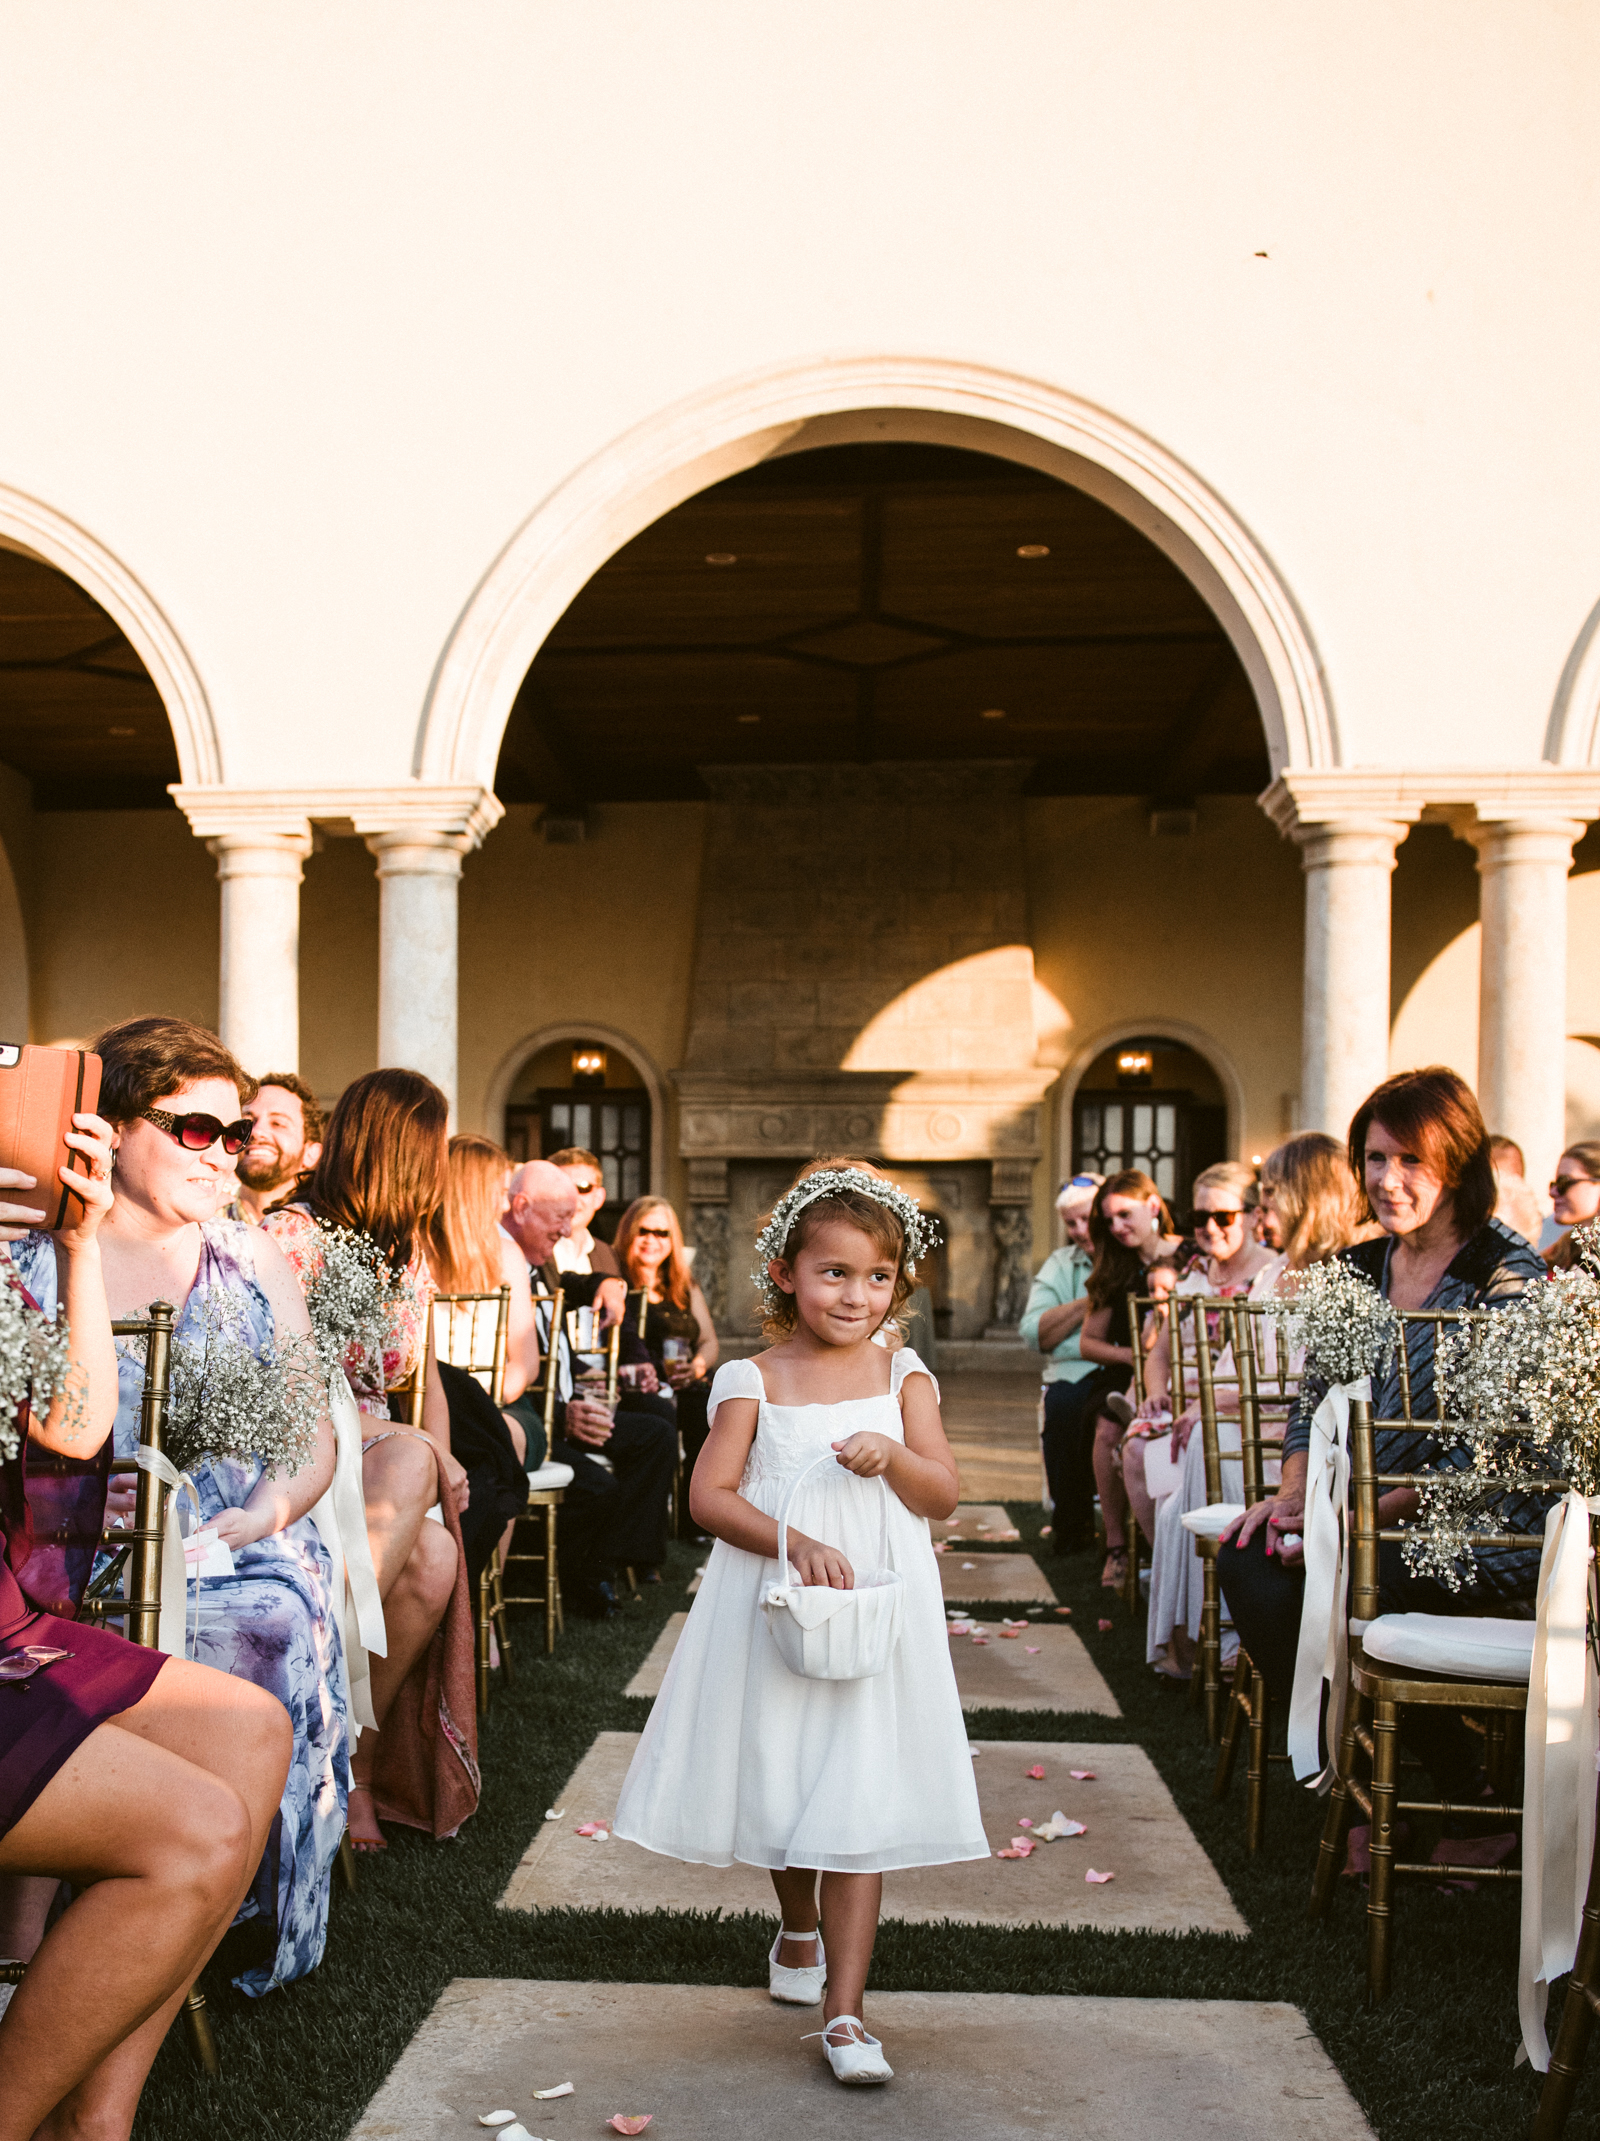 livvyland-blog-olivia-watson-wedding-villa-del-lago-austin-texas-fall-blush-burgundy-classic-romantic-flower-girl